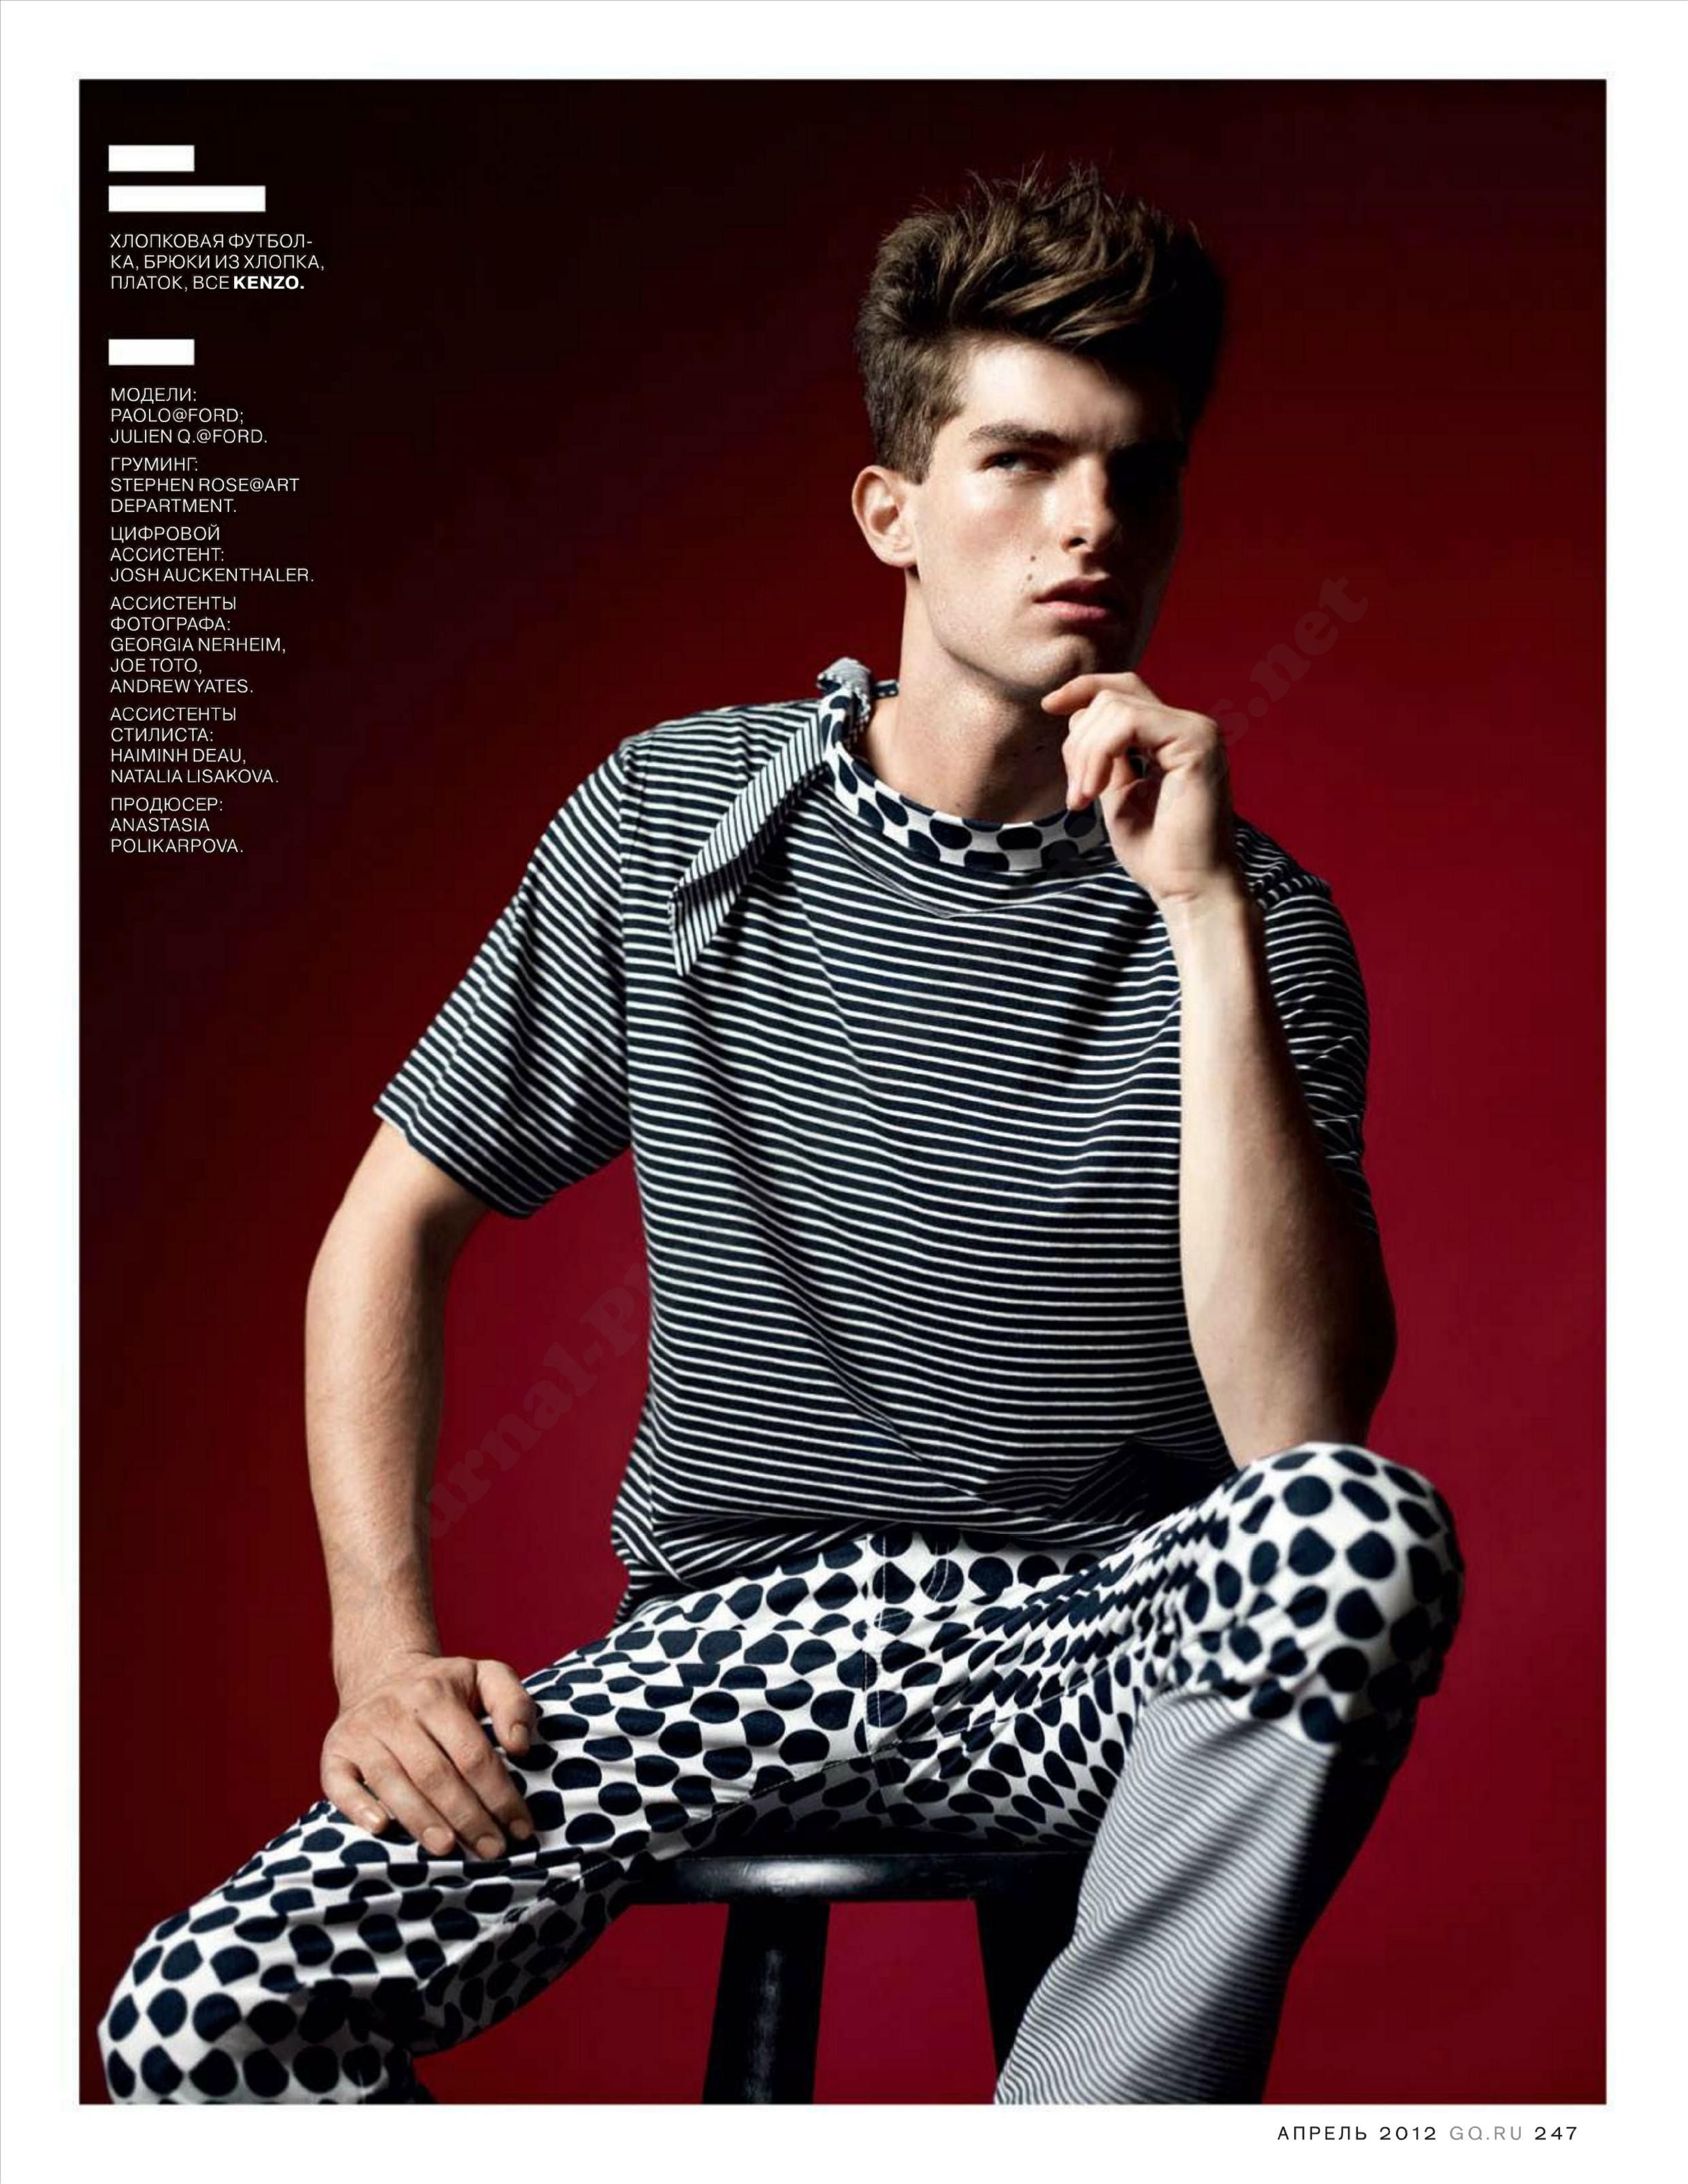 TBT: Paolo Anchisi & Julien Quevenne Play with Patterns for GQ Russia